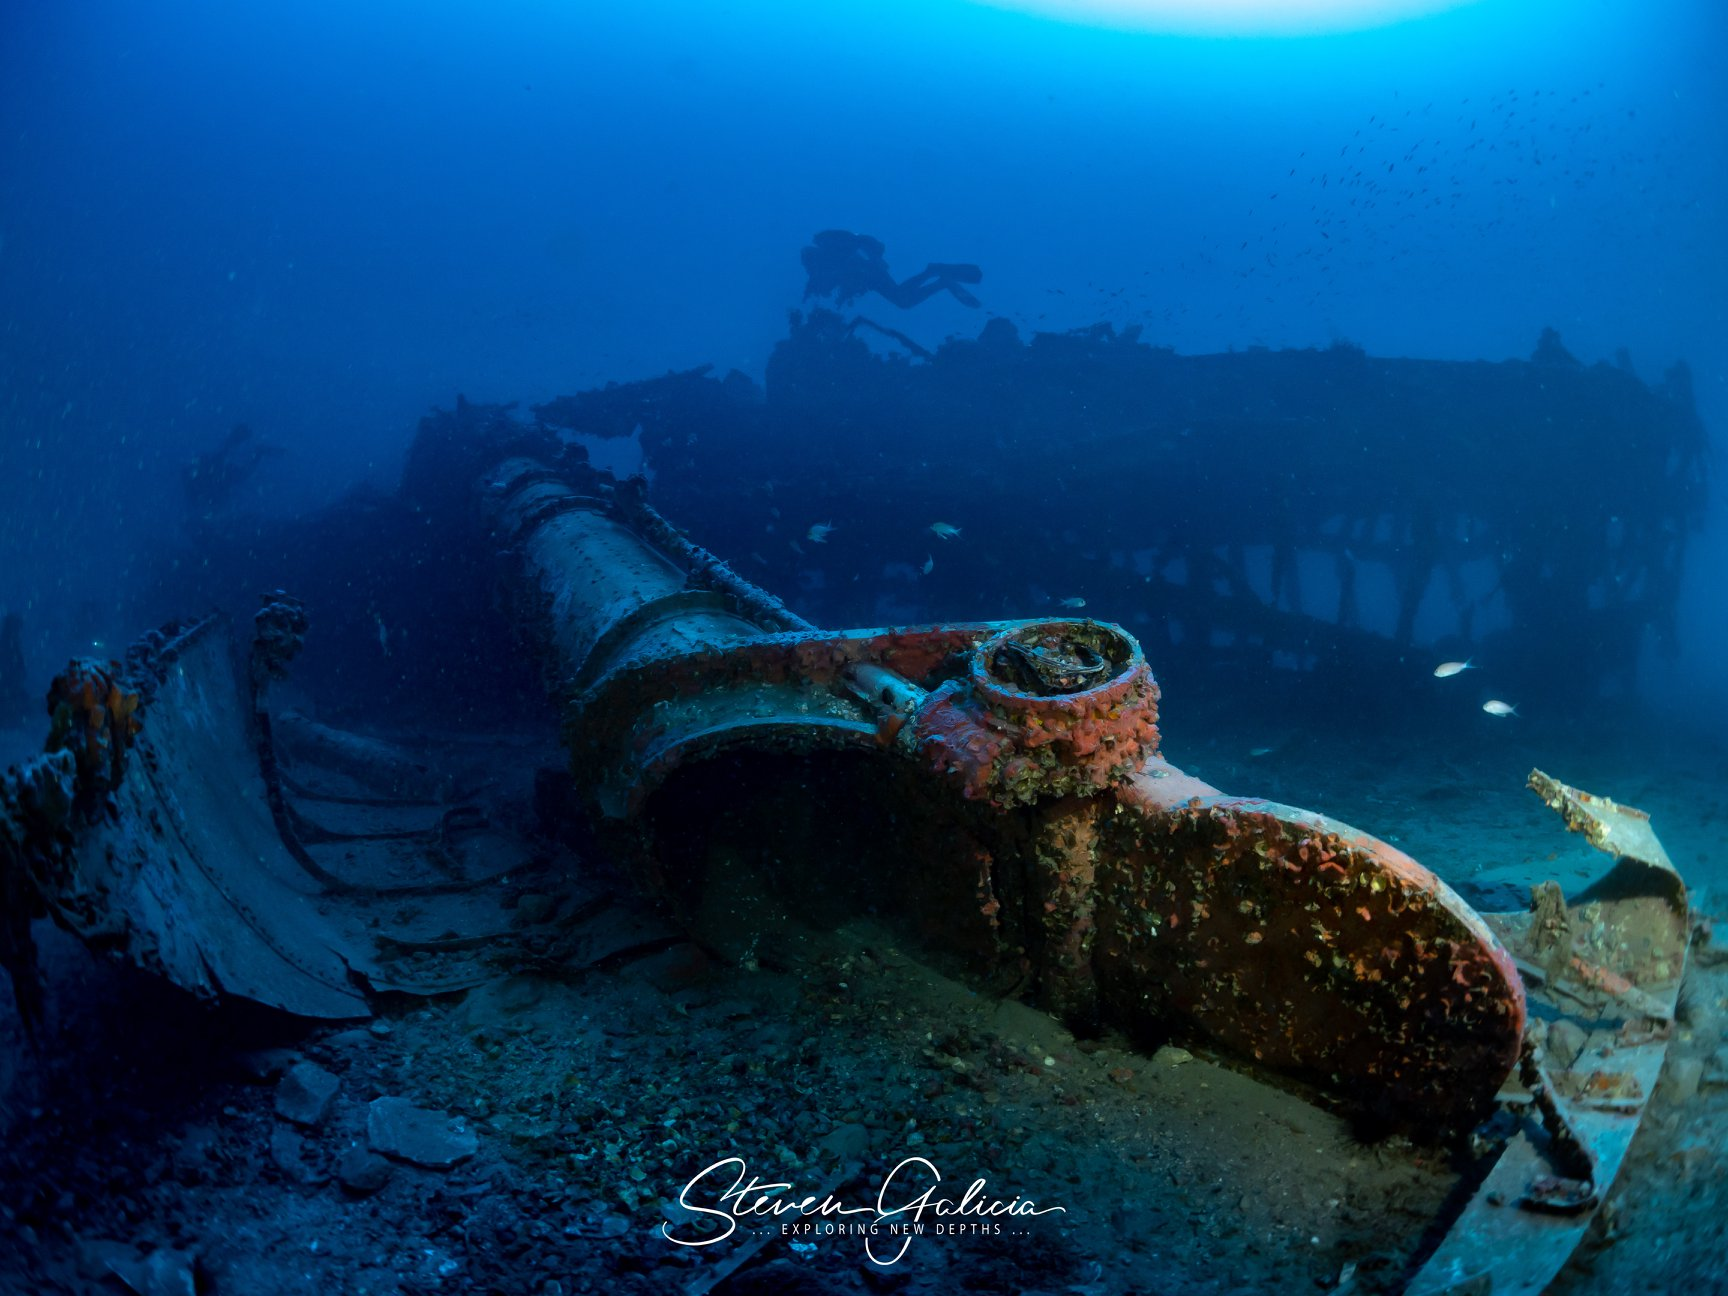 Starboard torpedo tube dislodged from the wreck, torpedo still inside [Steven Galicia]